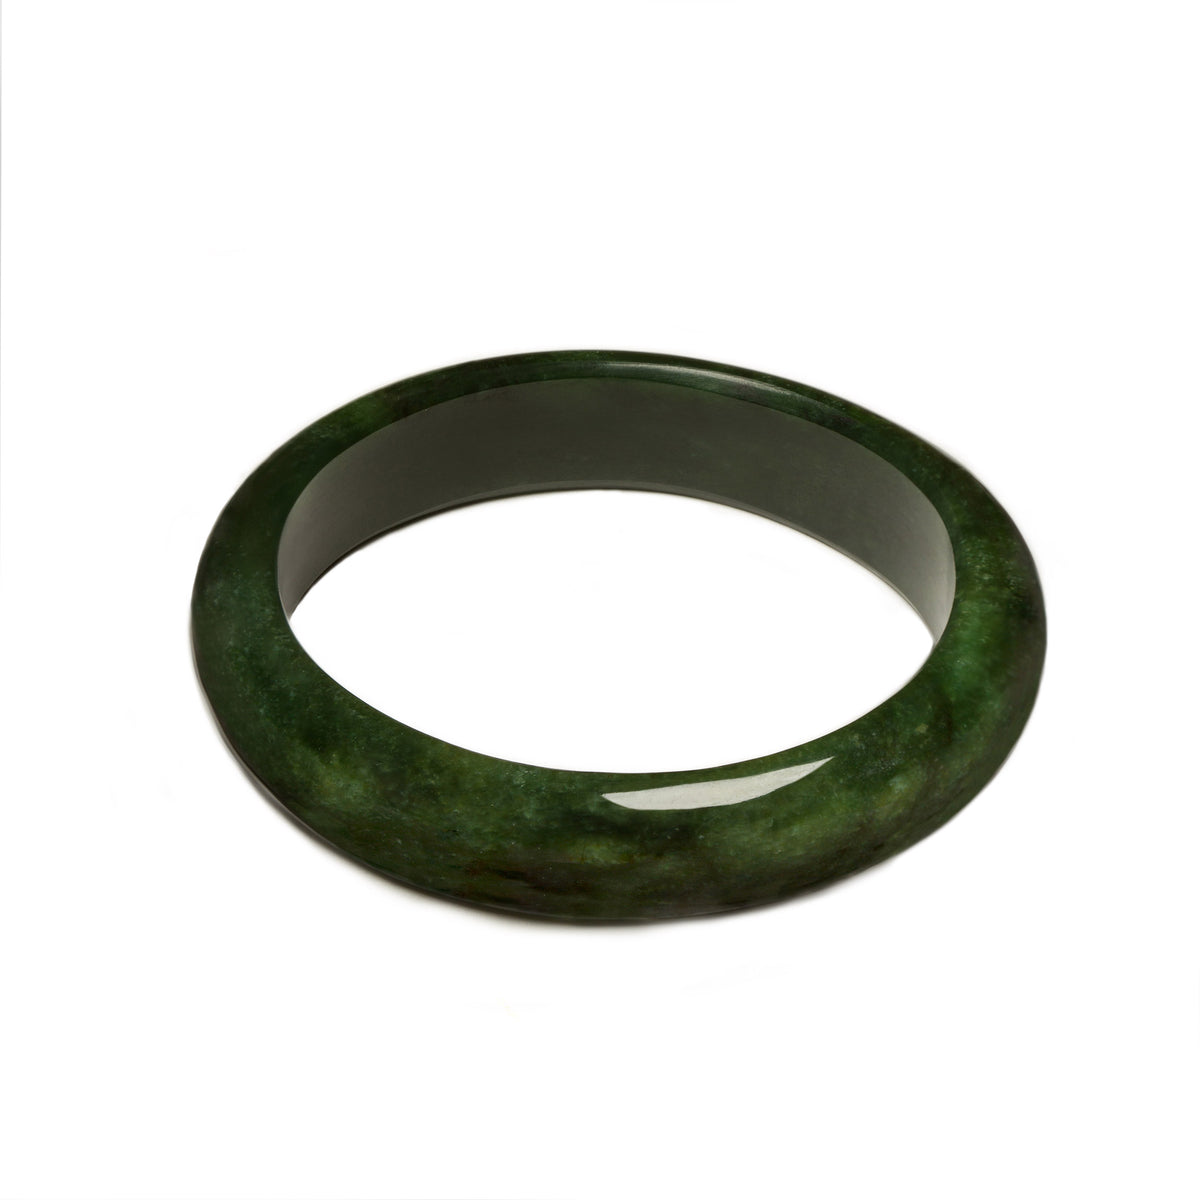 New Zealand Pounamu // RSBAN65A / 66mm (Internal Diameter) x 79mm (External Diameter)